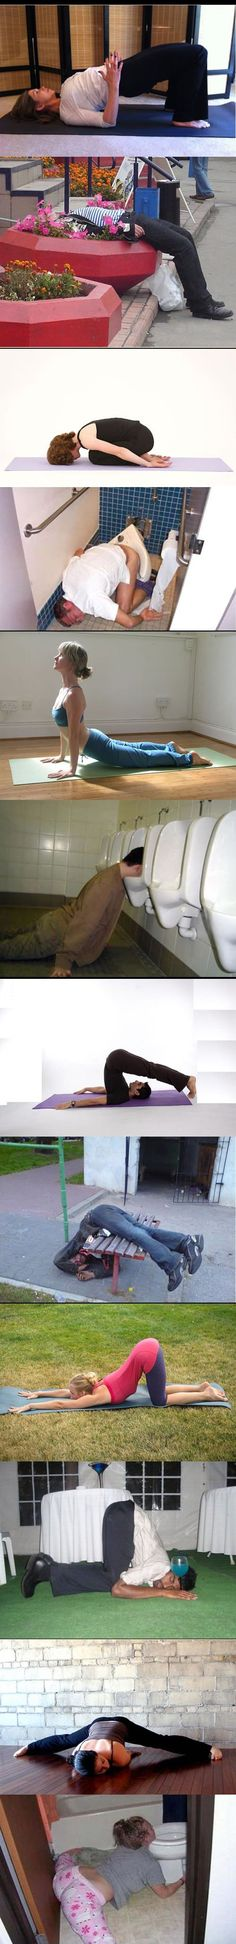 Yoga vs. Pass-out - Fail Bild | Webfail - Fail Bilder und Fail Videos